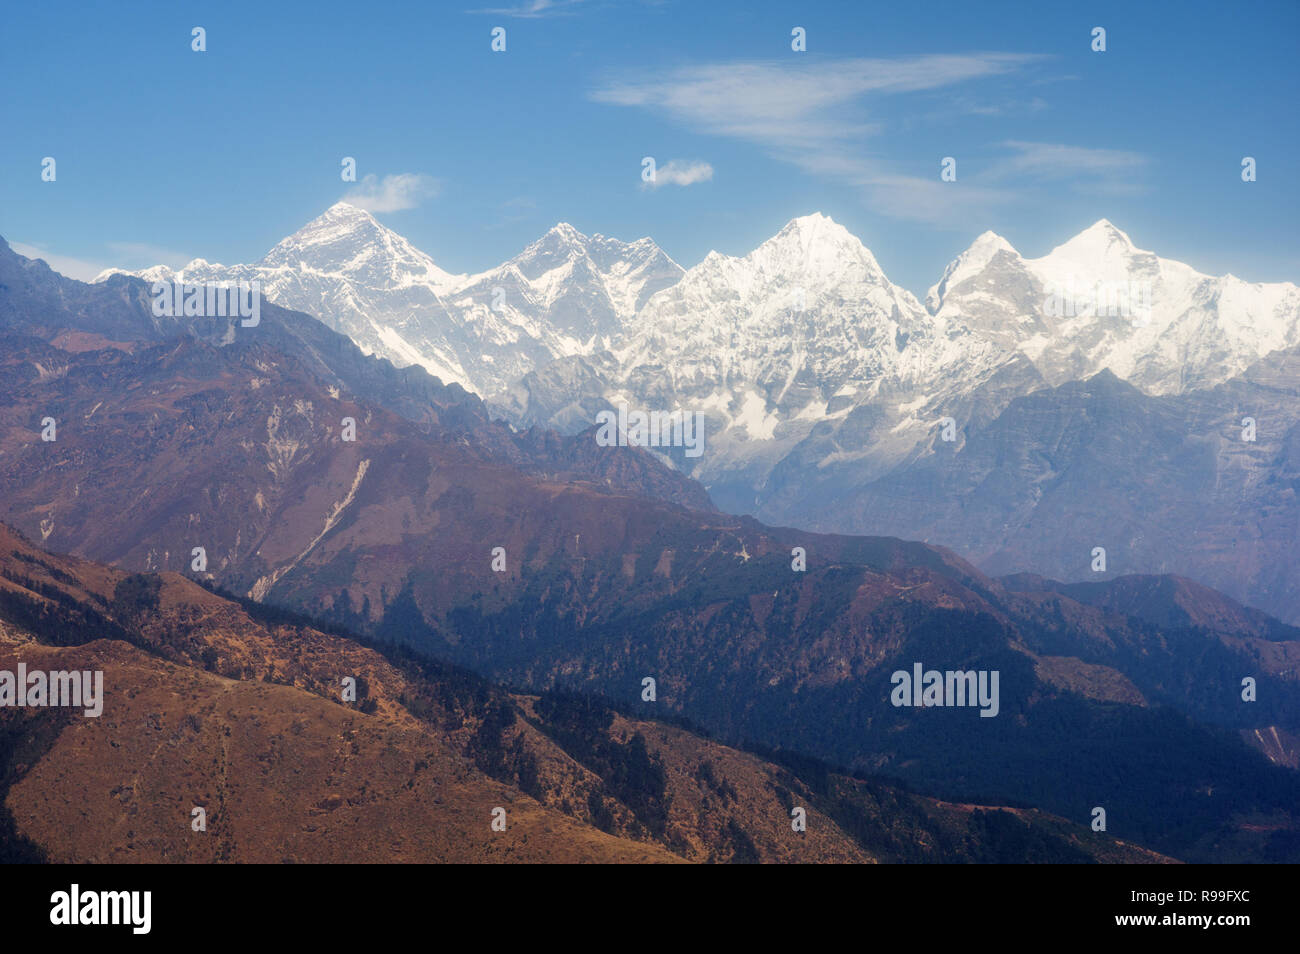 view of Everest and Himalayan other high peaks from a distance - Stock Image